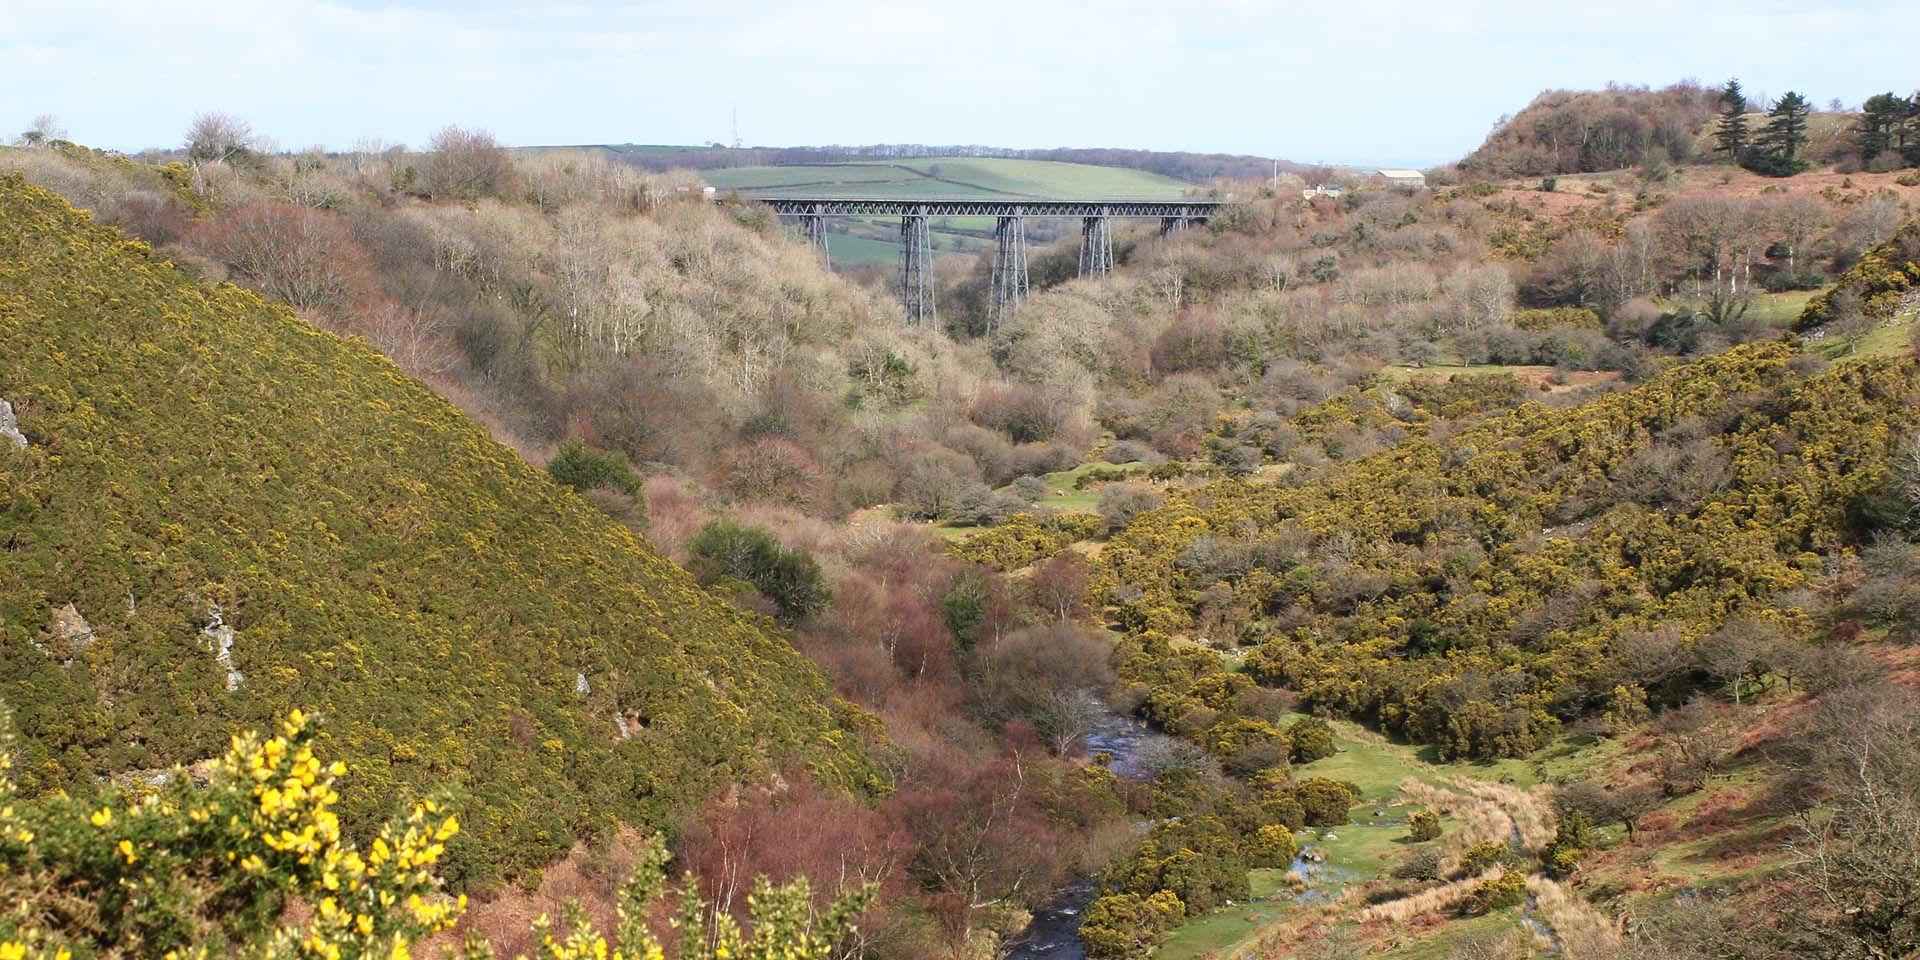 Meldon valley and viaduct